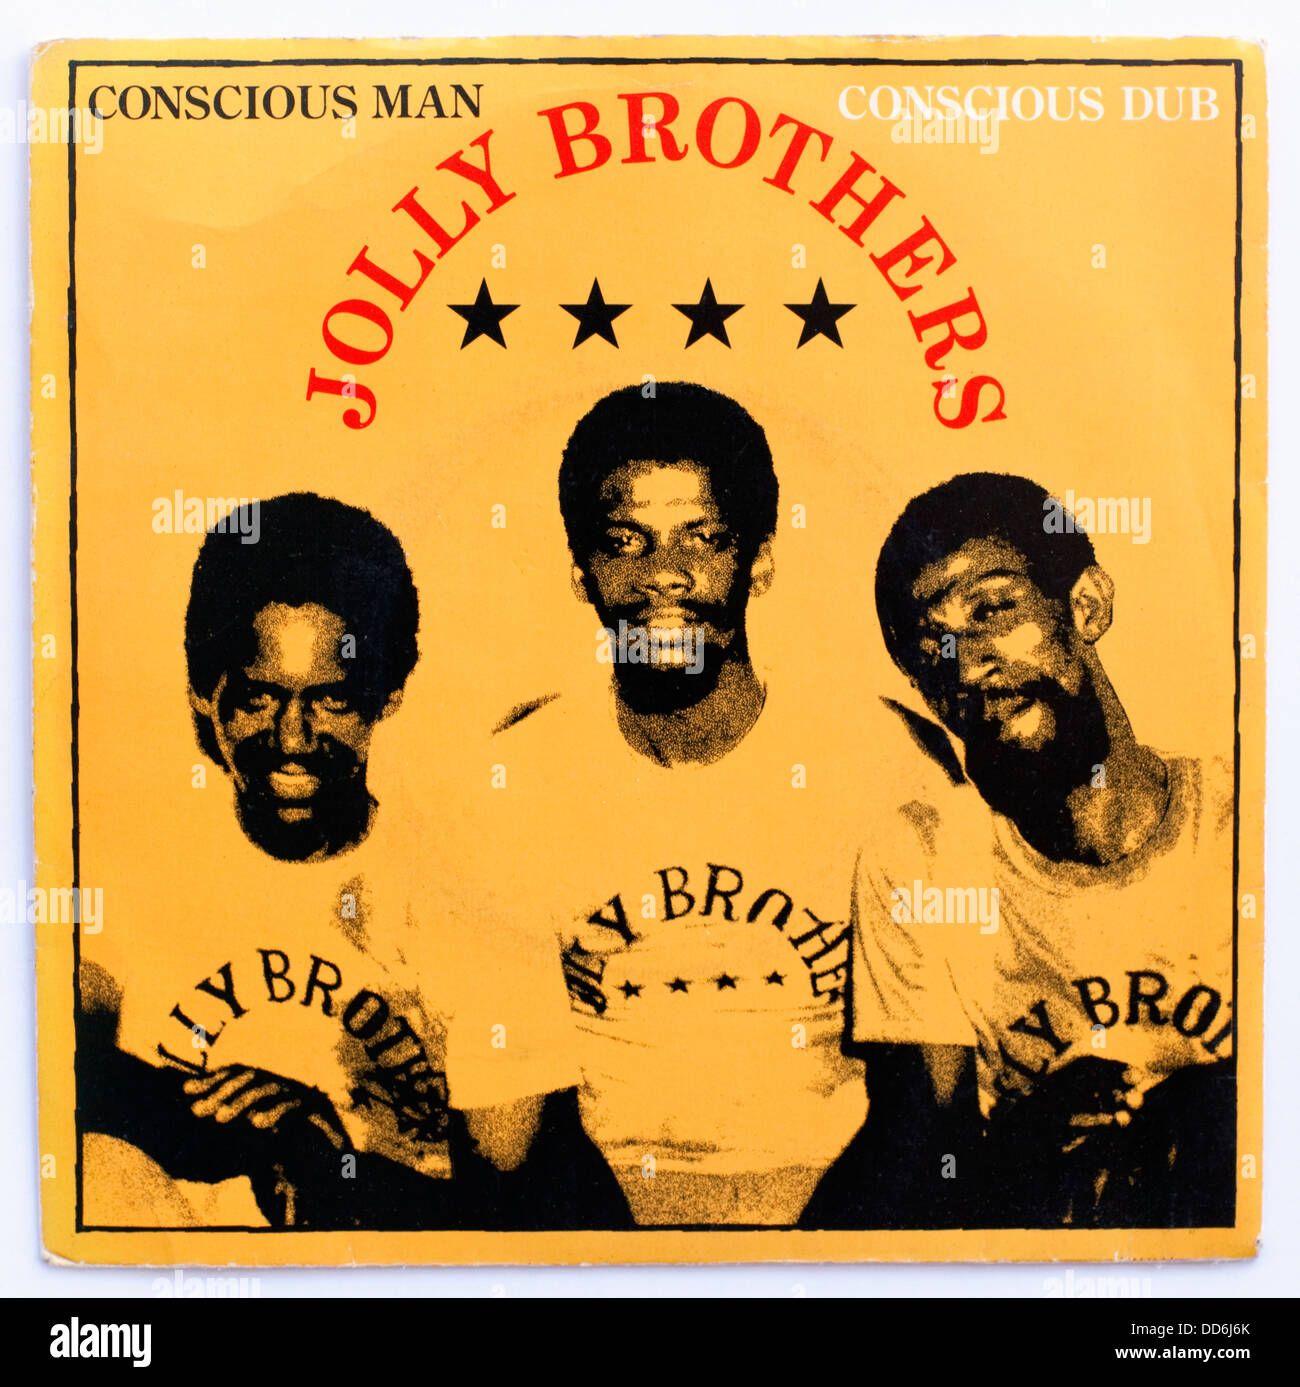 Jolly Brothers - Conscious Man, 1978 7' picture cover single on Ballistic/UA - Stock Image